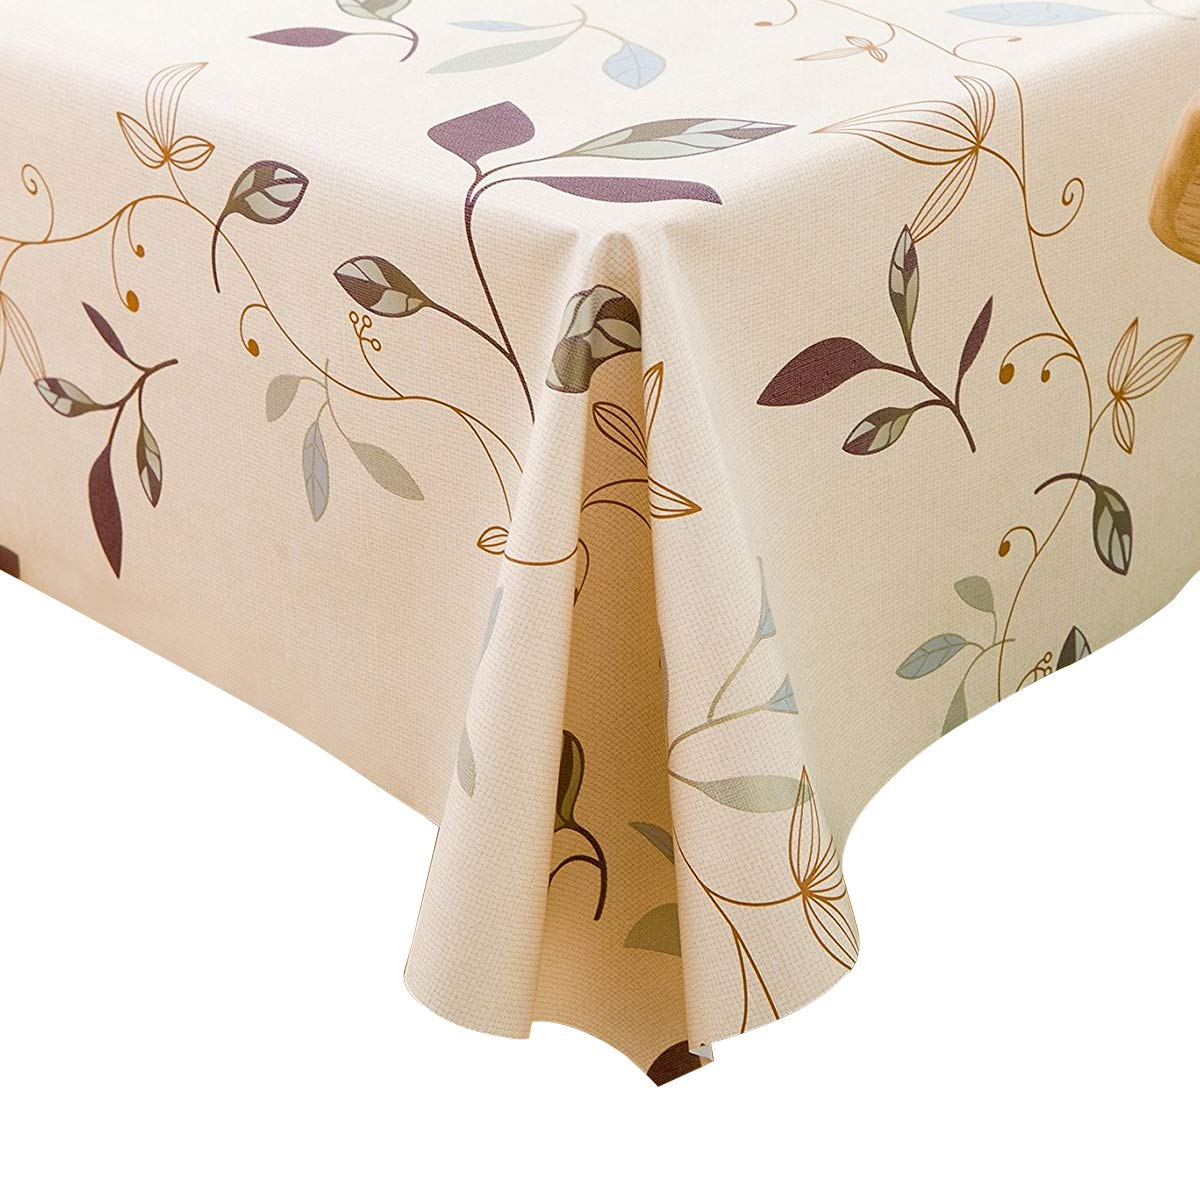 LEEVAN Heavy Weight Vinyl Rectangle Table Cover Wipe Clean PVC Tablecloth Oil-Proof/Waterproof Stain-Resistant- 54 x 78 Inch (Autumn Leaves)